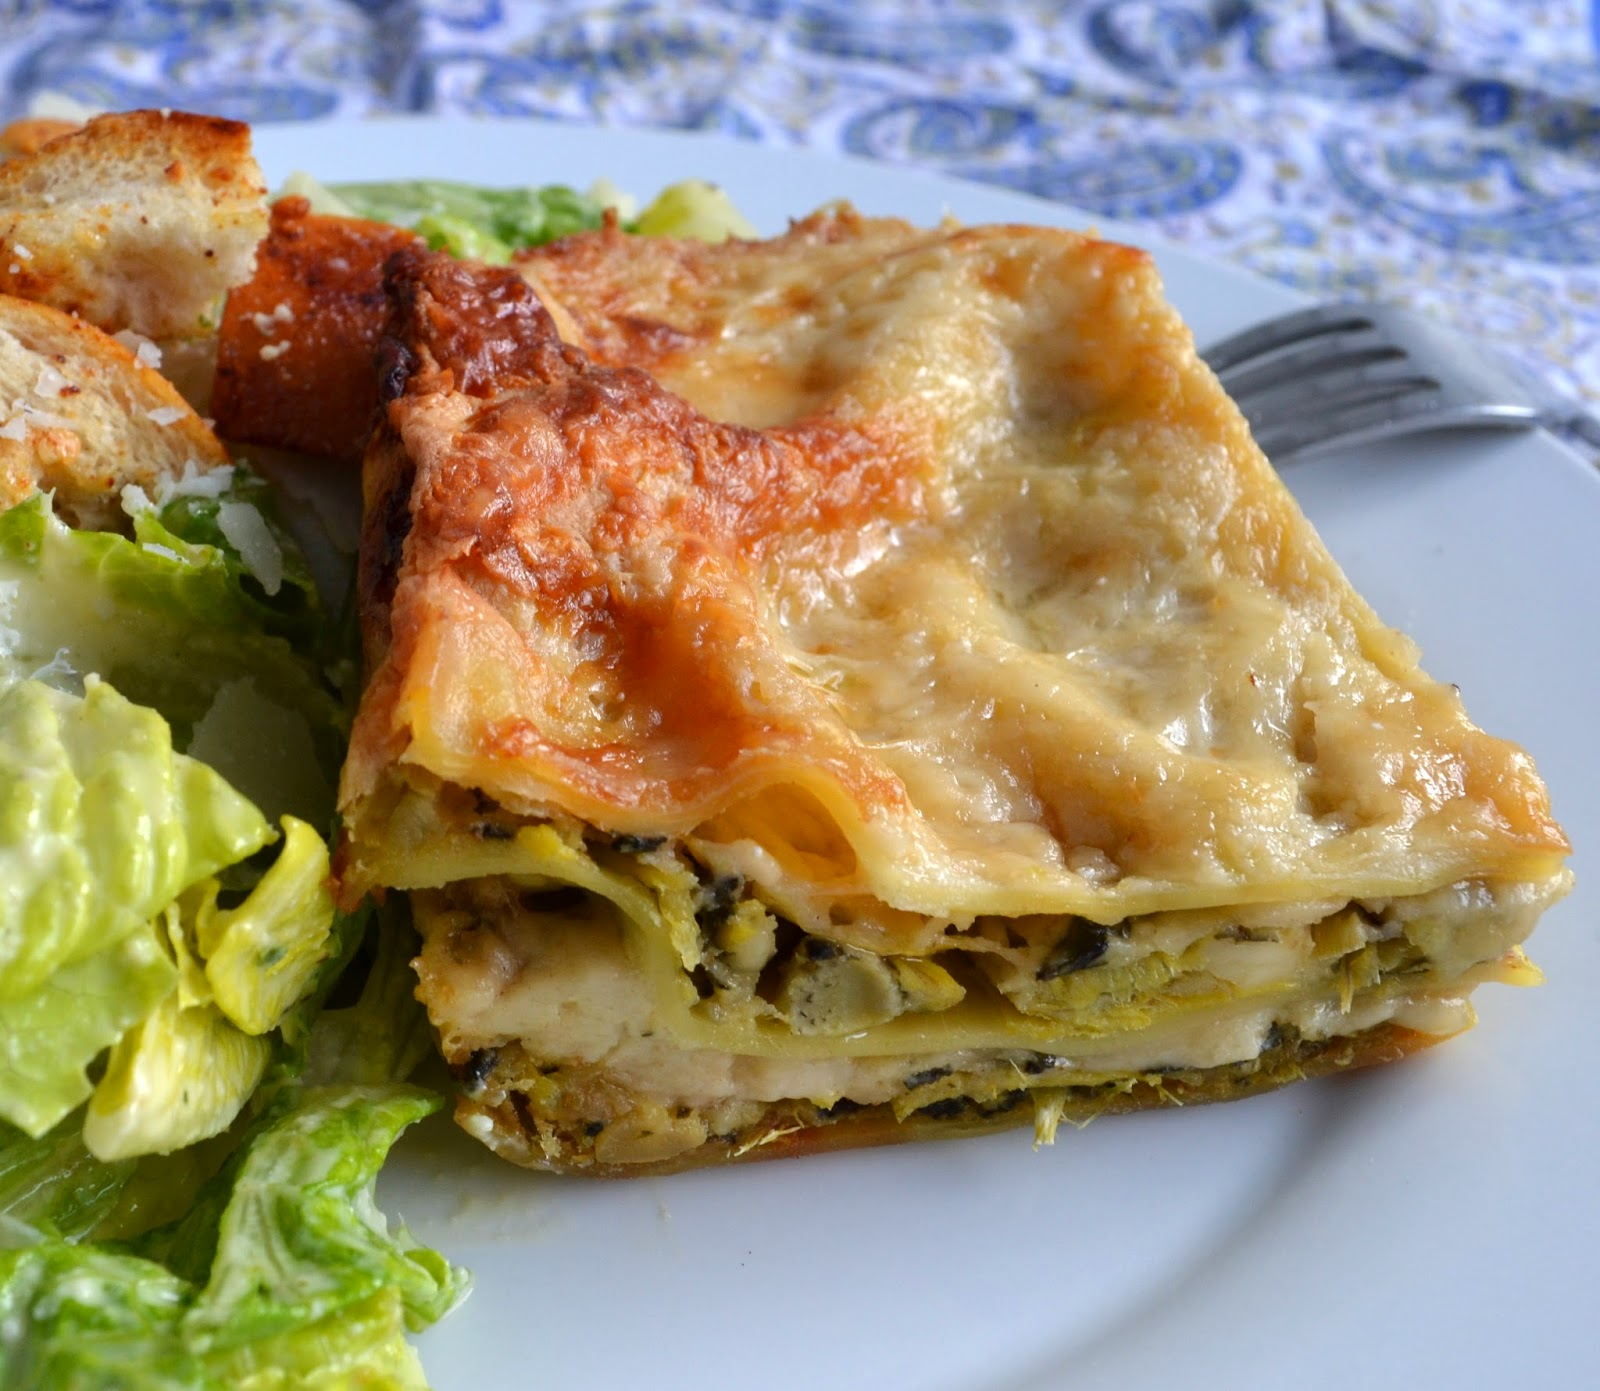 ... by Rook No. 17*: Recipe: Artichoke Lovers' Four Cheese White Lasagna